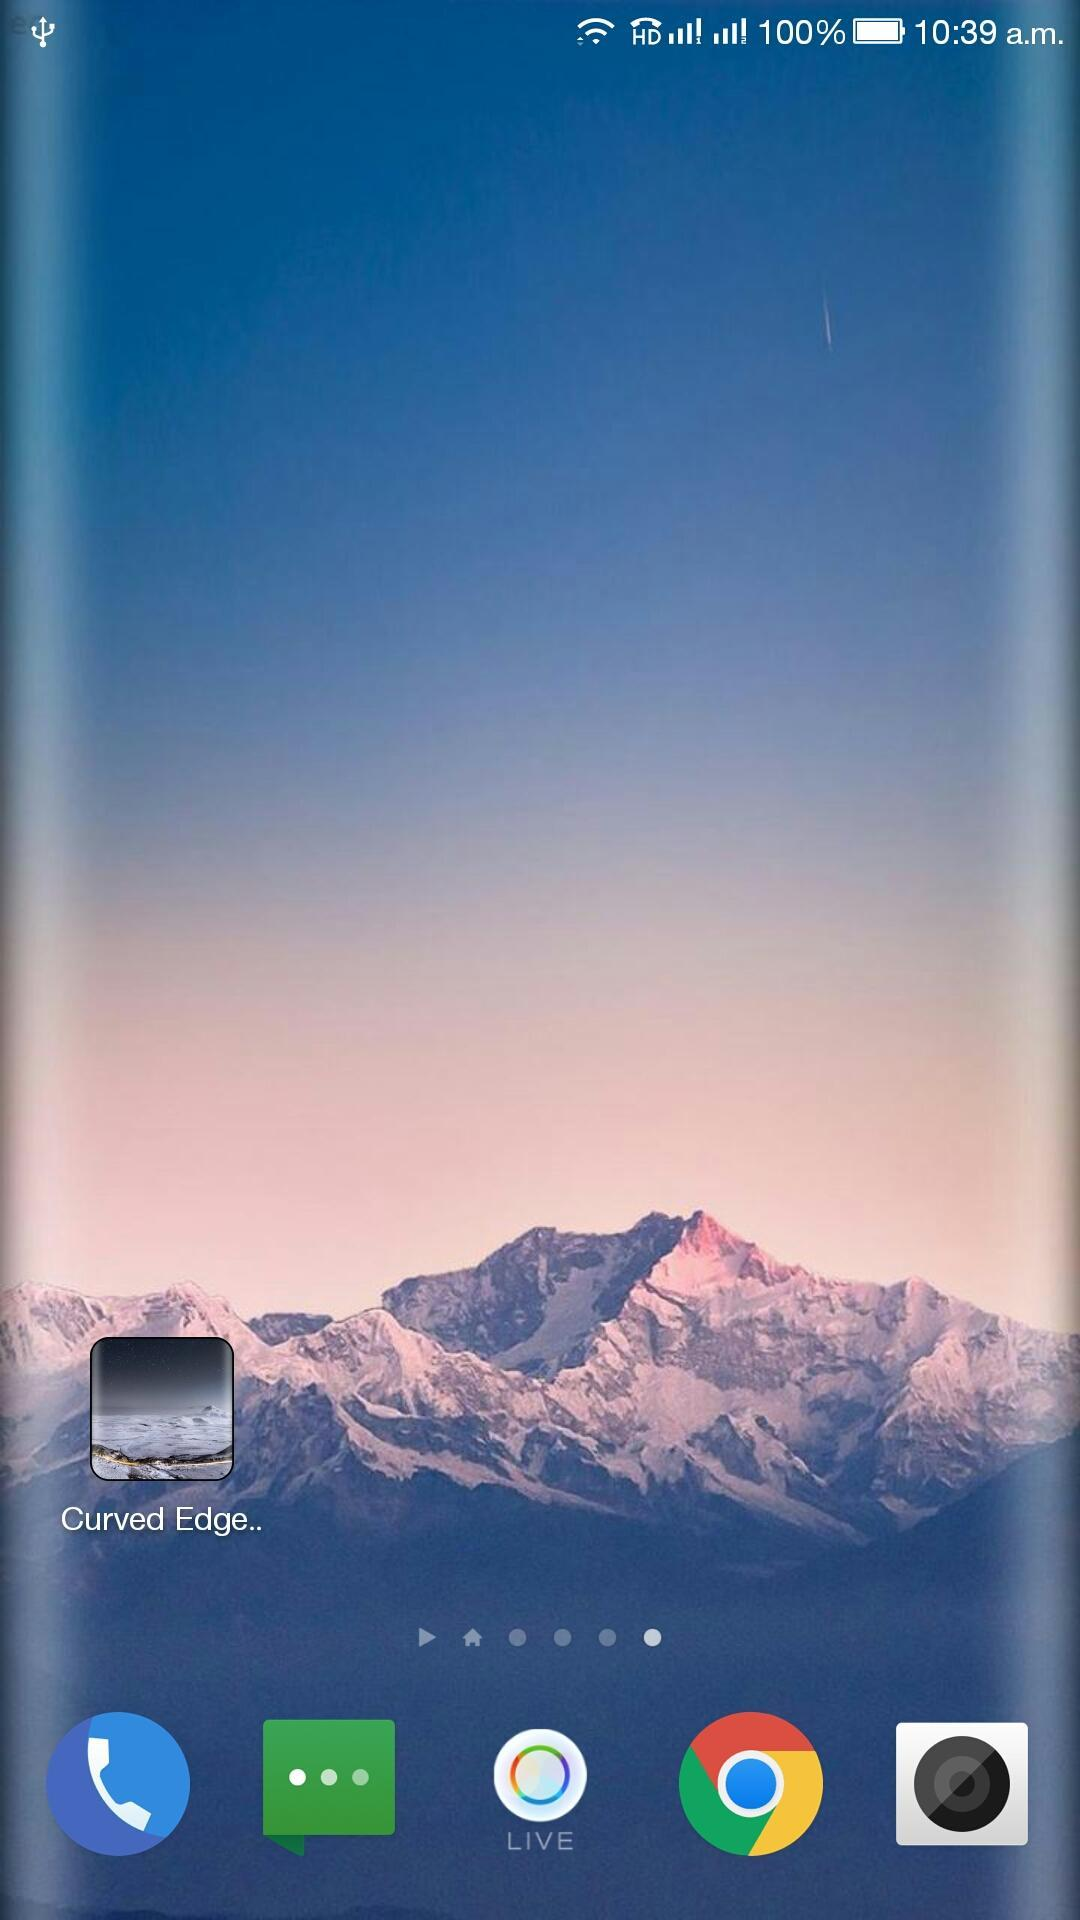 Curved Edge Wallpaper for Android - APK ...